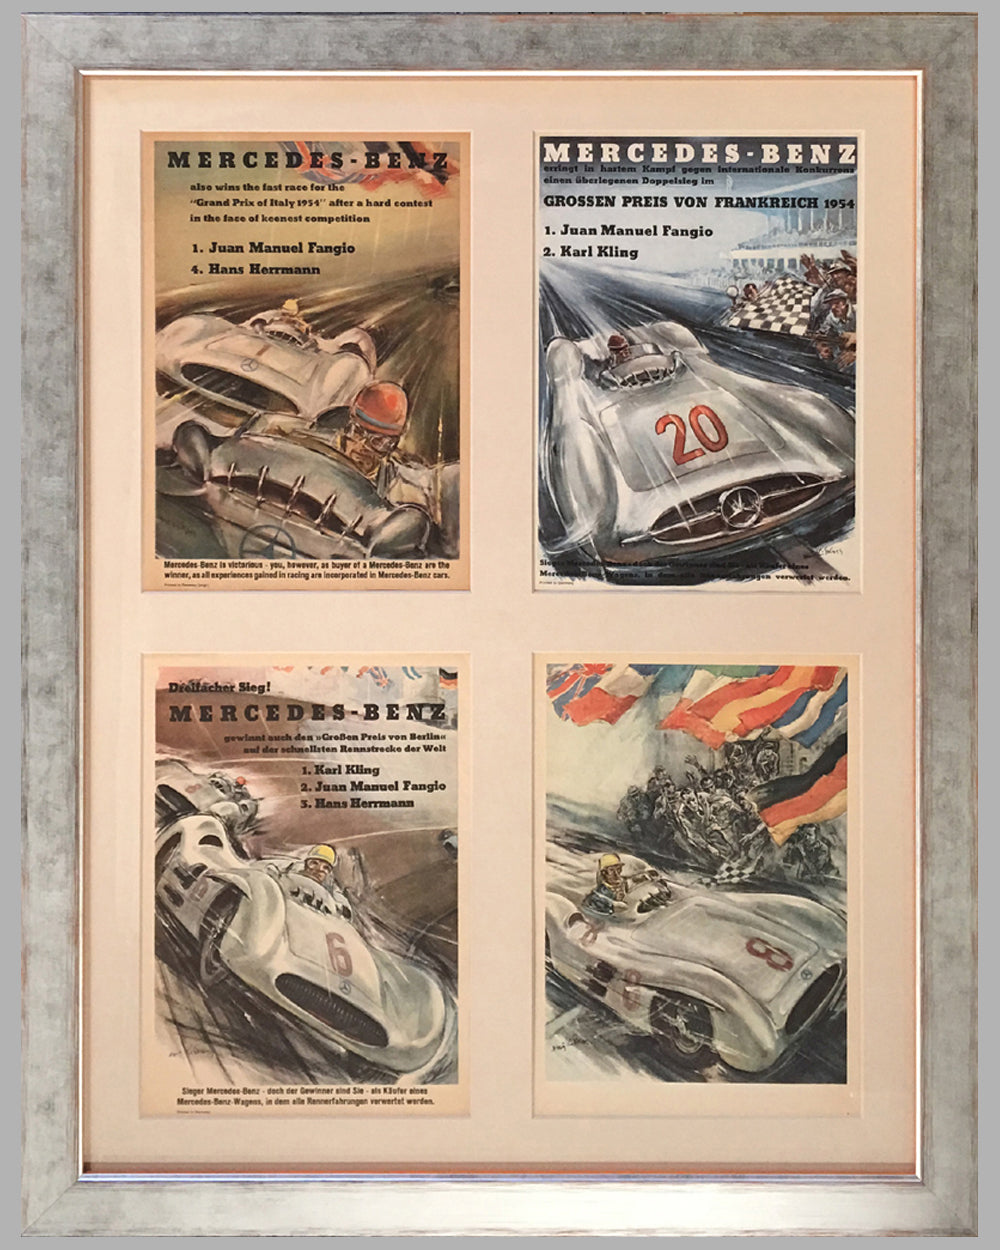 1954-1955 Mercedes Benz victory posters by Hans Liska, lot of 4